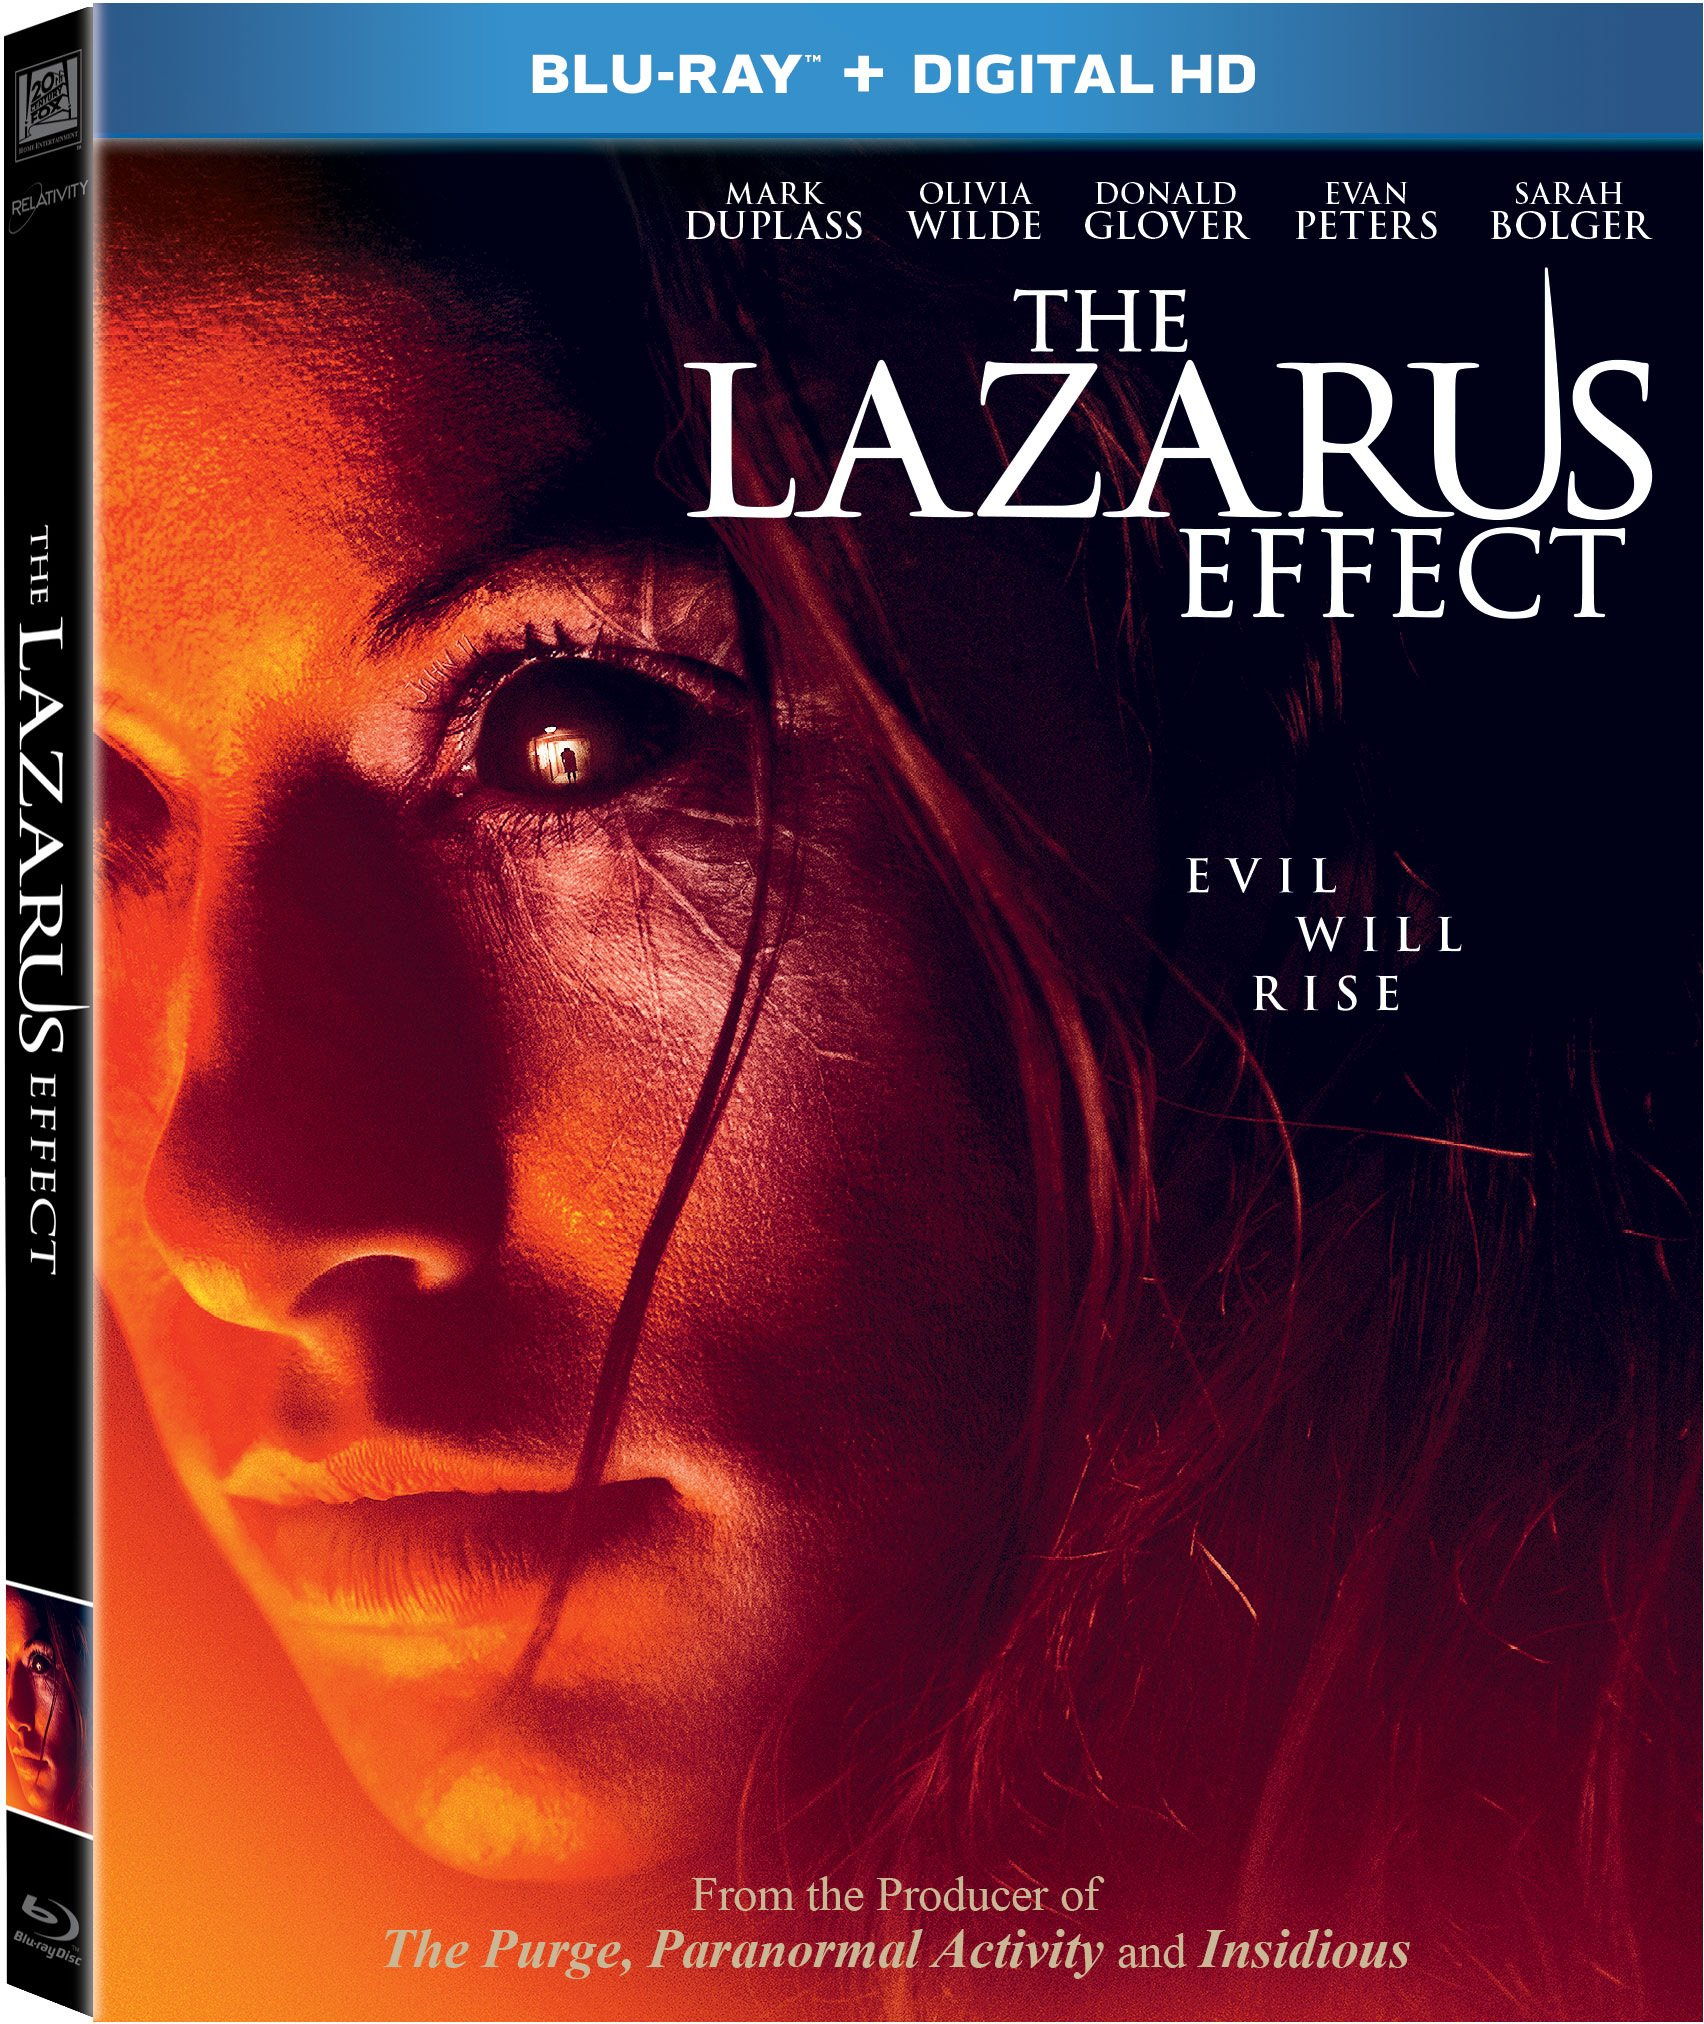 Blu-ray : The Lazarus Effect (Digital Theater System, Digitally Mastered in HD, Widescreen, )